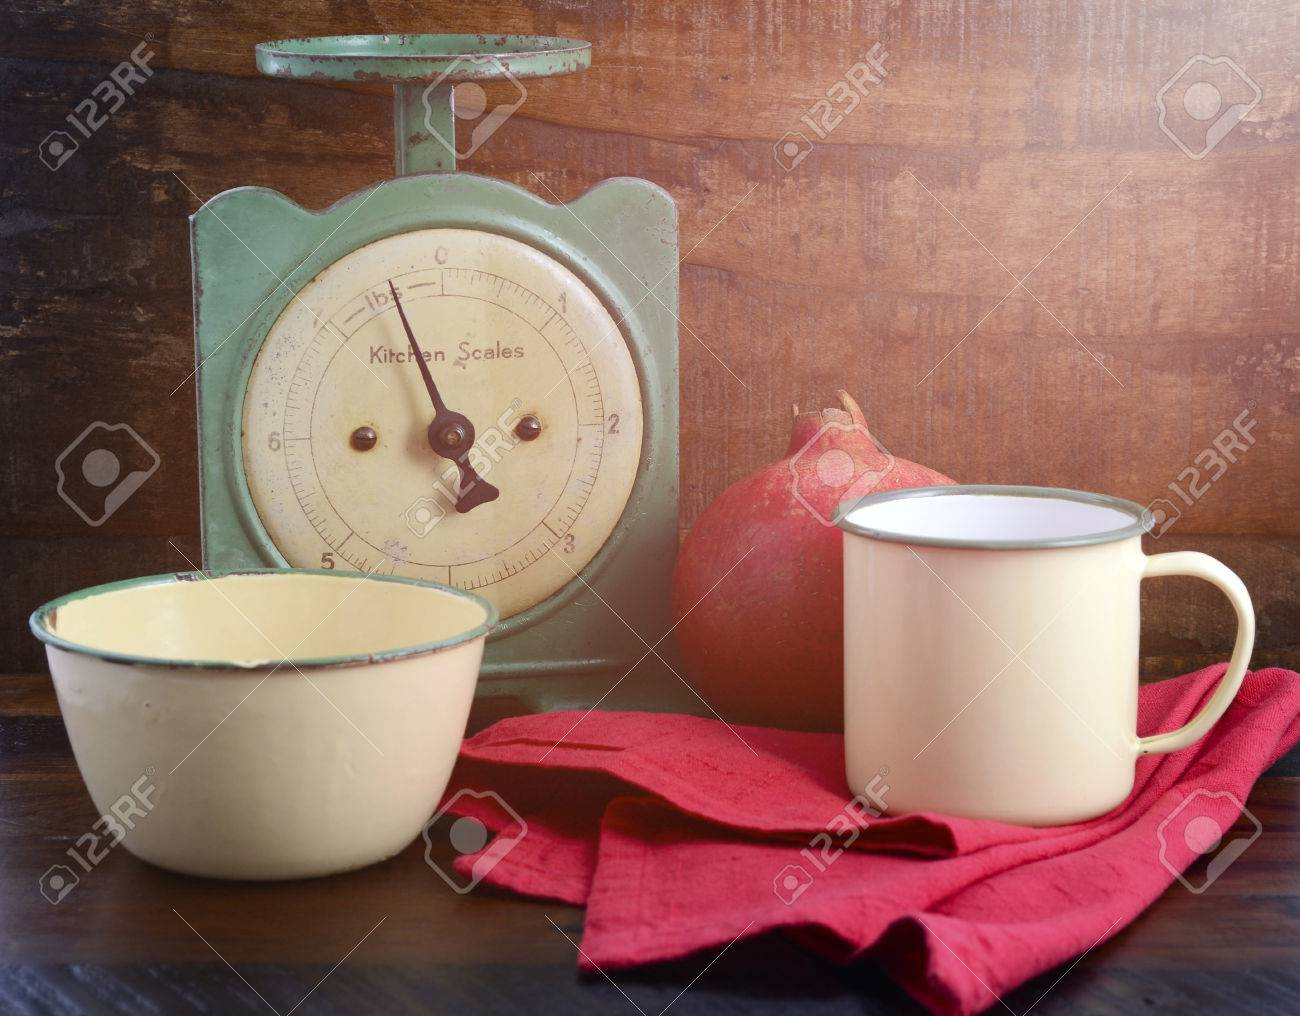 Vintage Kitchen Scales And Tin Cups And Pans On Dark Reclaimed Wood  Background, With Applied